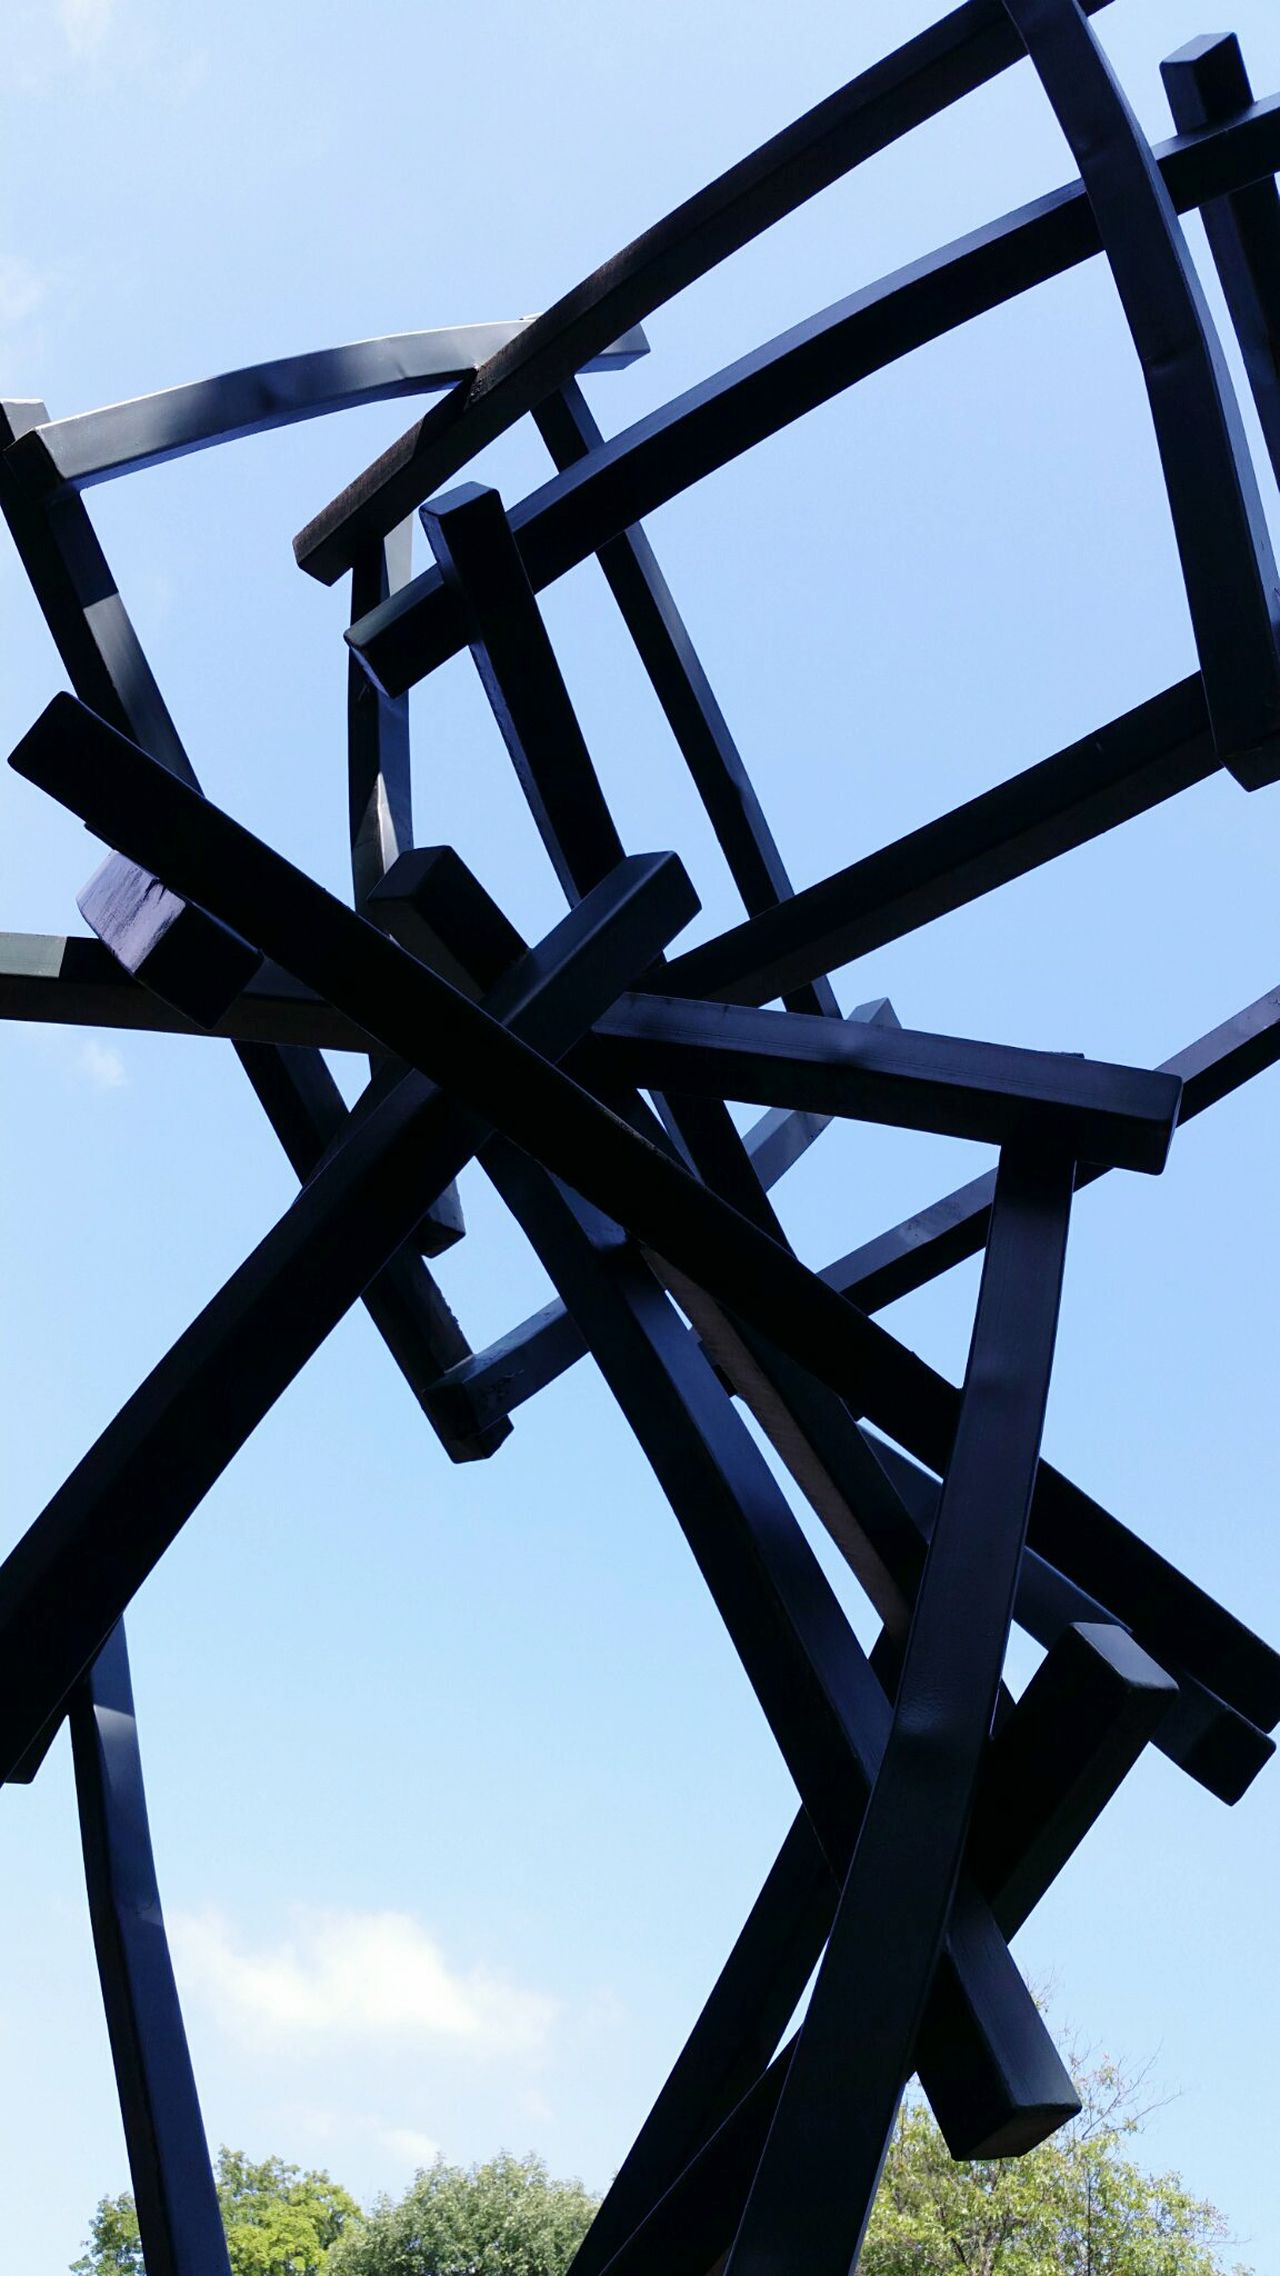 Sculptures Sculpted Sculpture By The Sea Abstract Art Artistic Expression Metal Sculpture Welded Art Sky